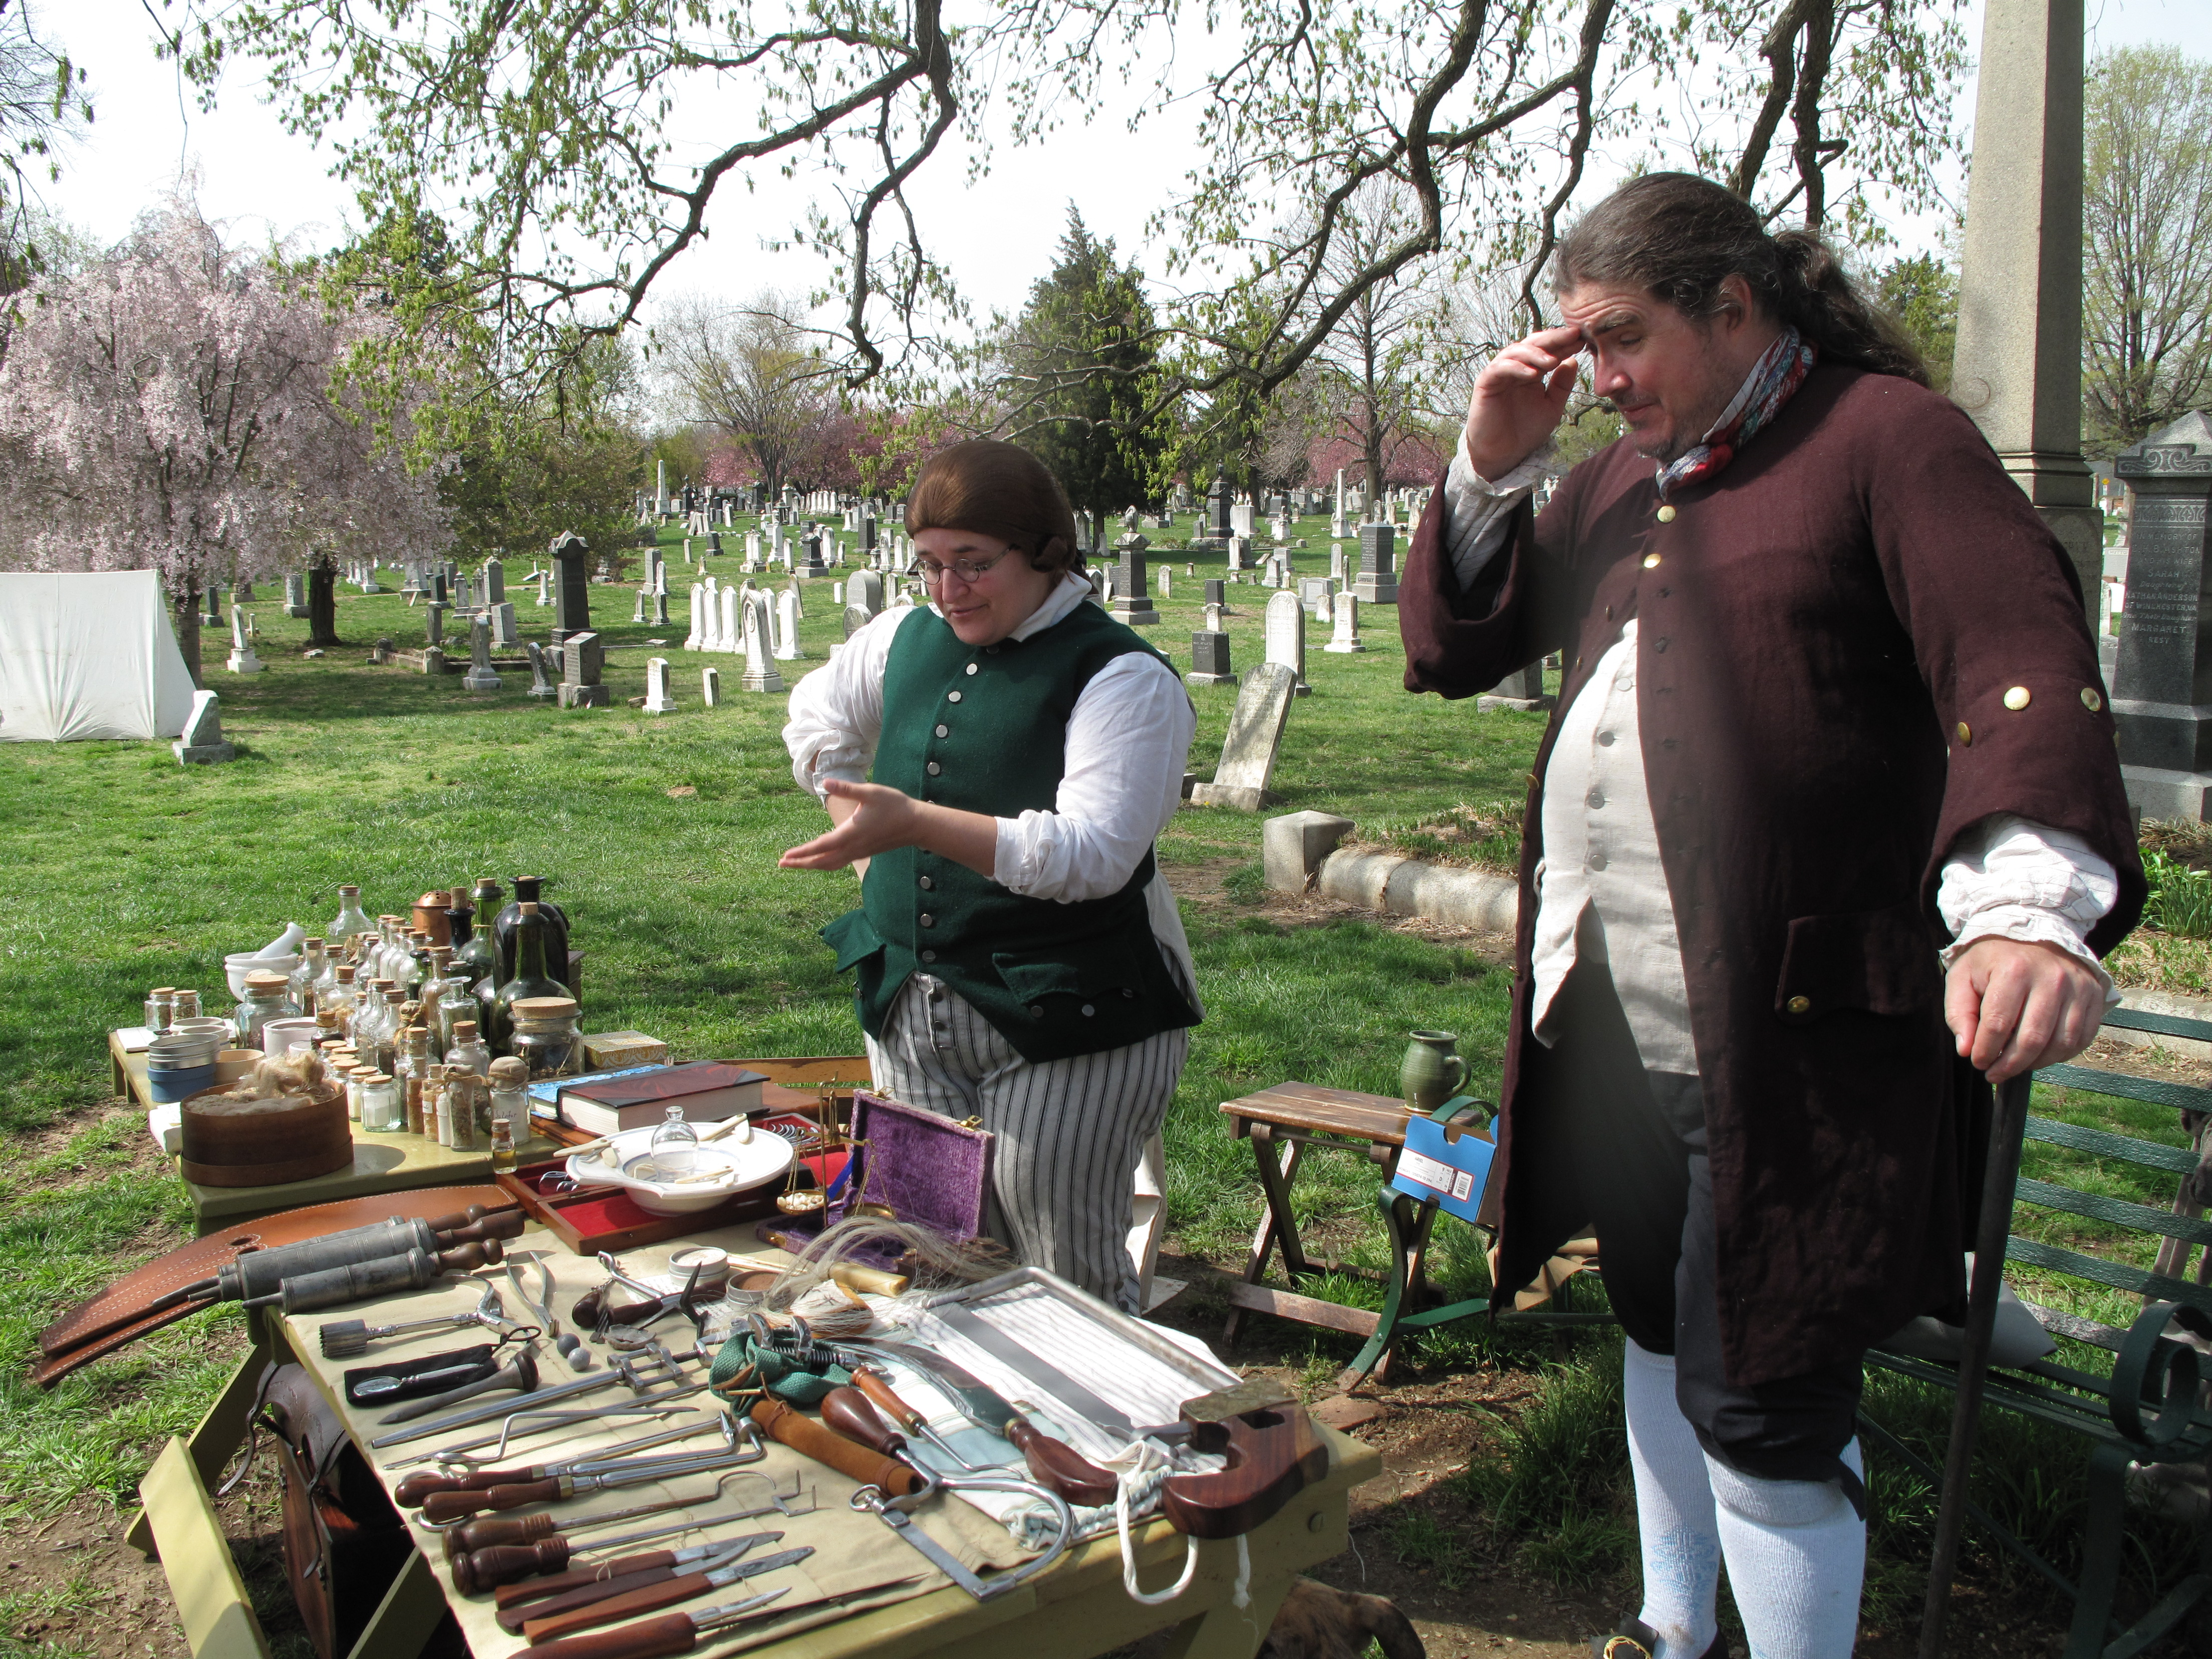 Revolutionary War reimagined at historic cemetery